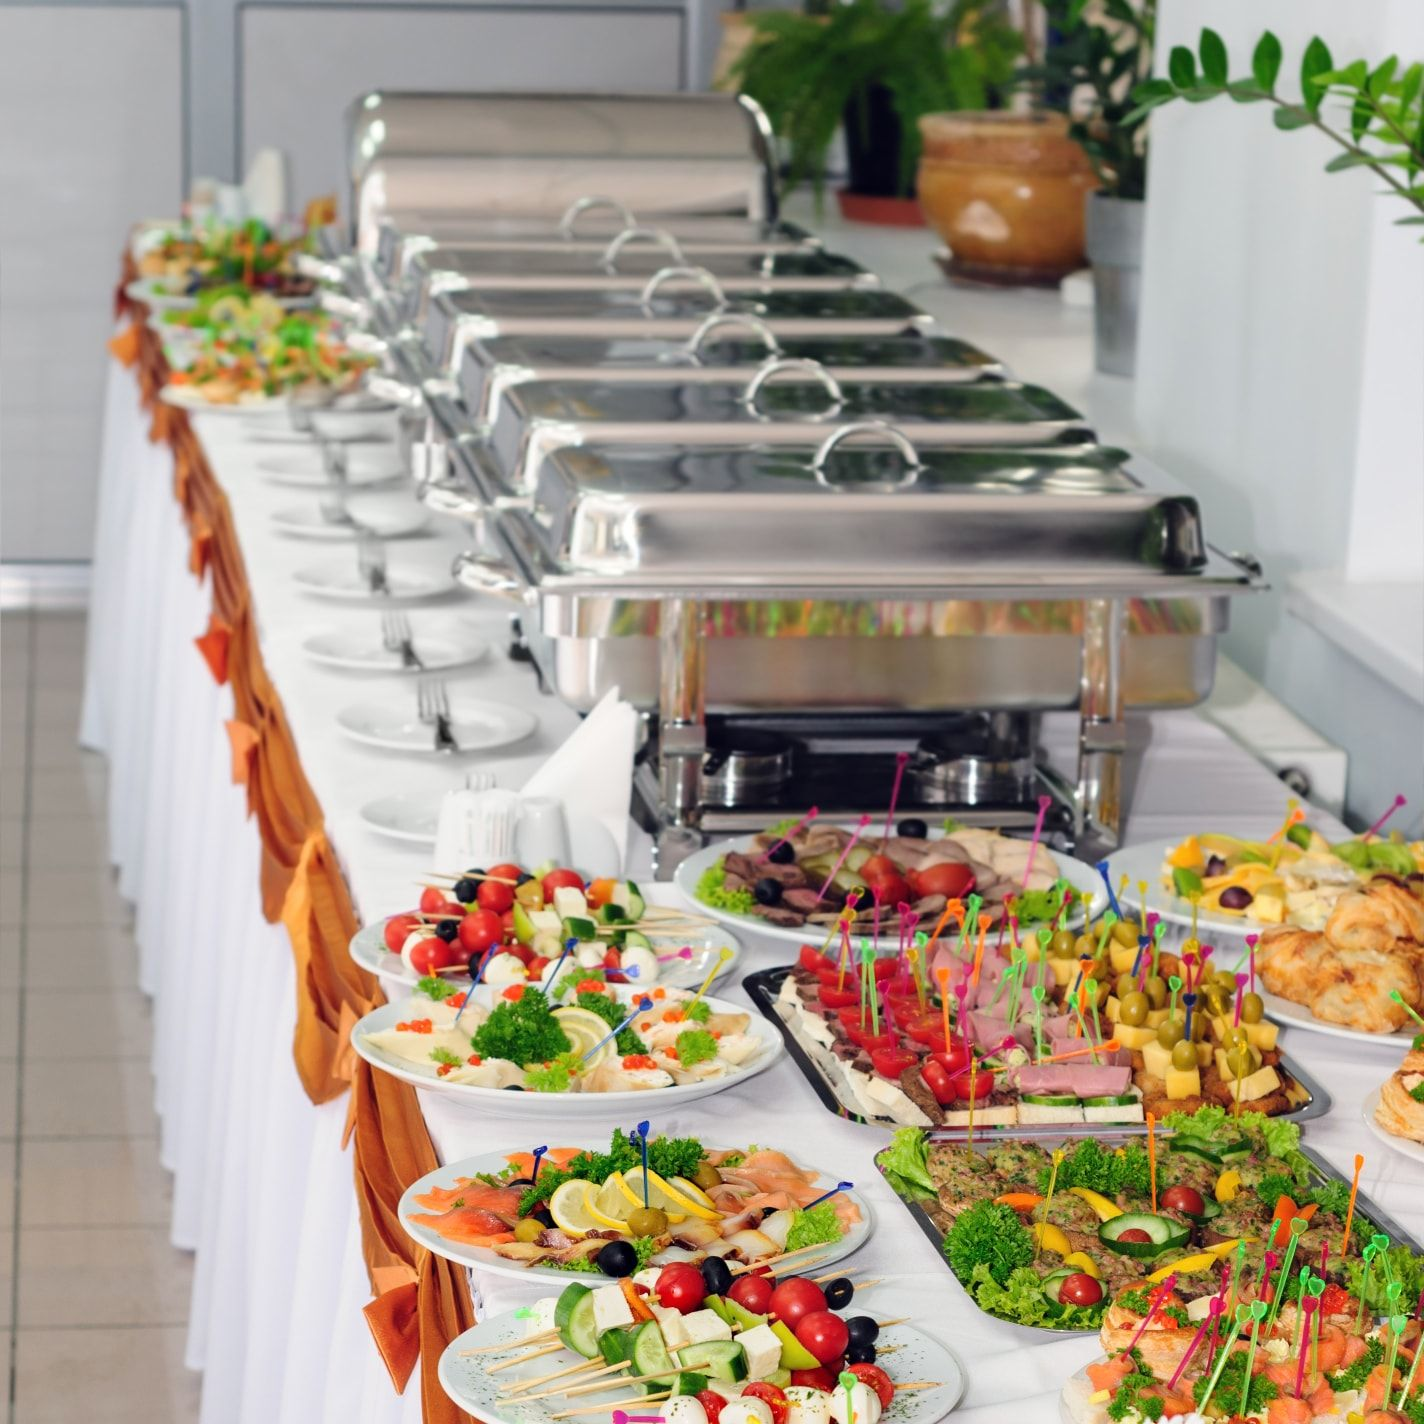 Best Food For Wedding Buffet: Chafing Dishes - Stainless In 2020